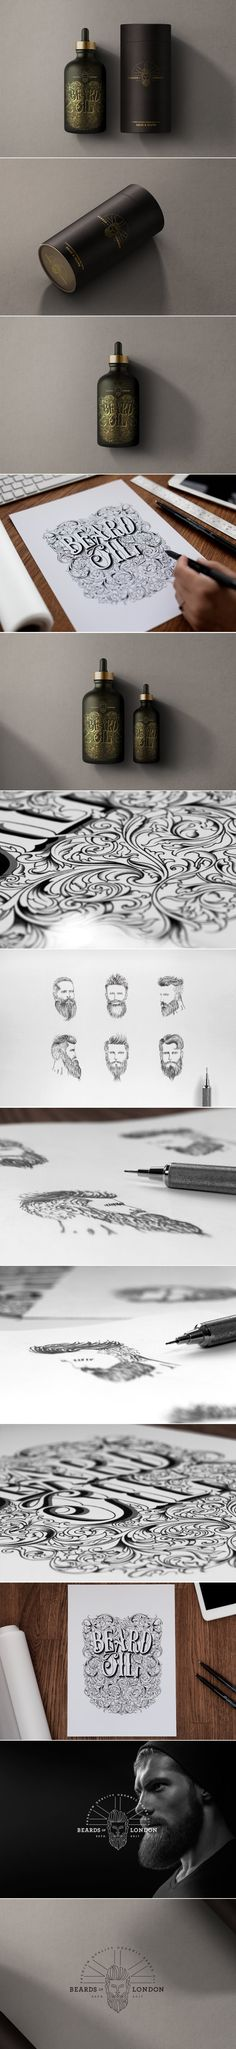 Keep Your Beard In Check With This Elegant Beard Oil — The Dieline | Packaging & Branding Design & Innovation News